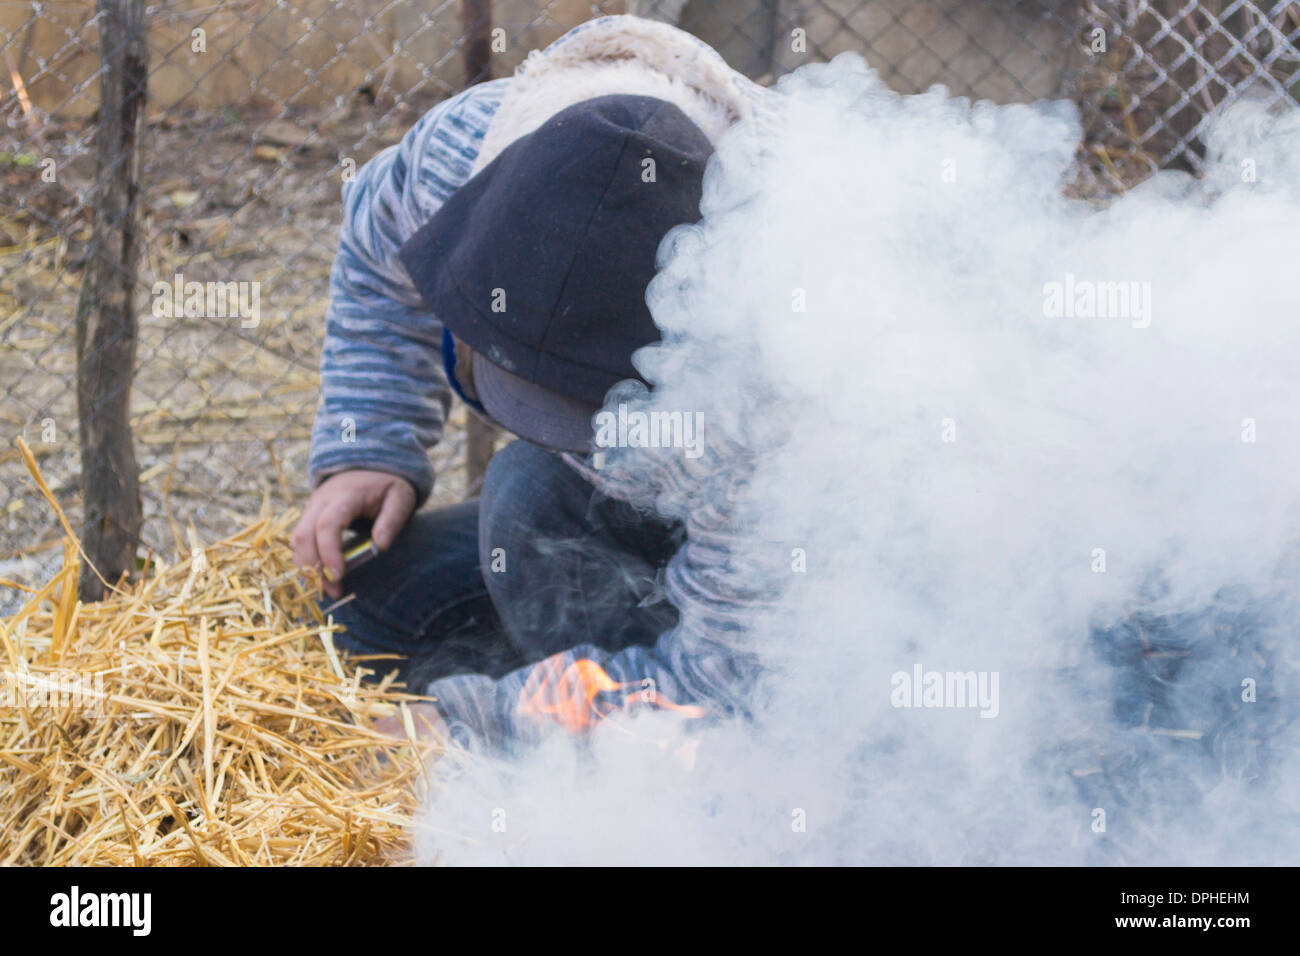 Traditional way of killing a pig in rural Romania - Grain straws covering a slaughtered pig are set on fire by a young man - Stock Image